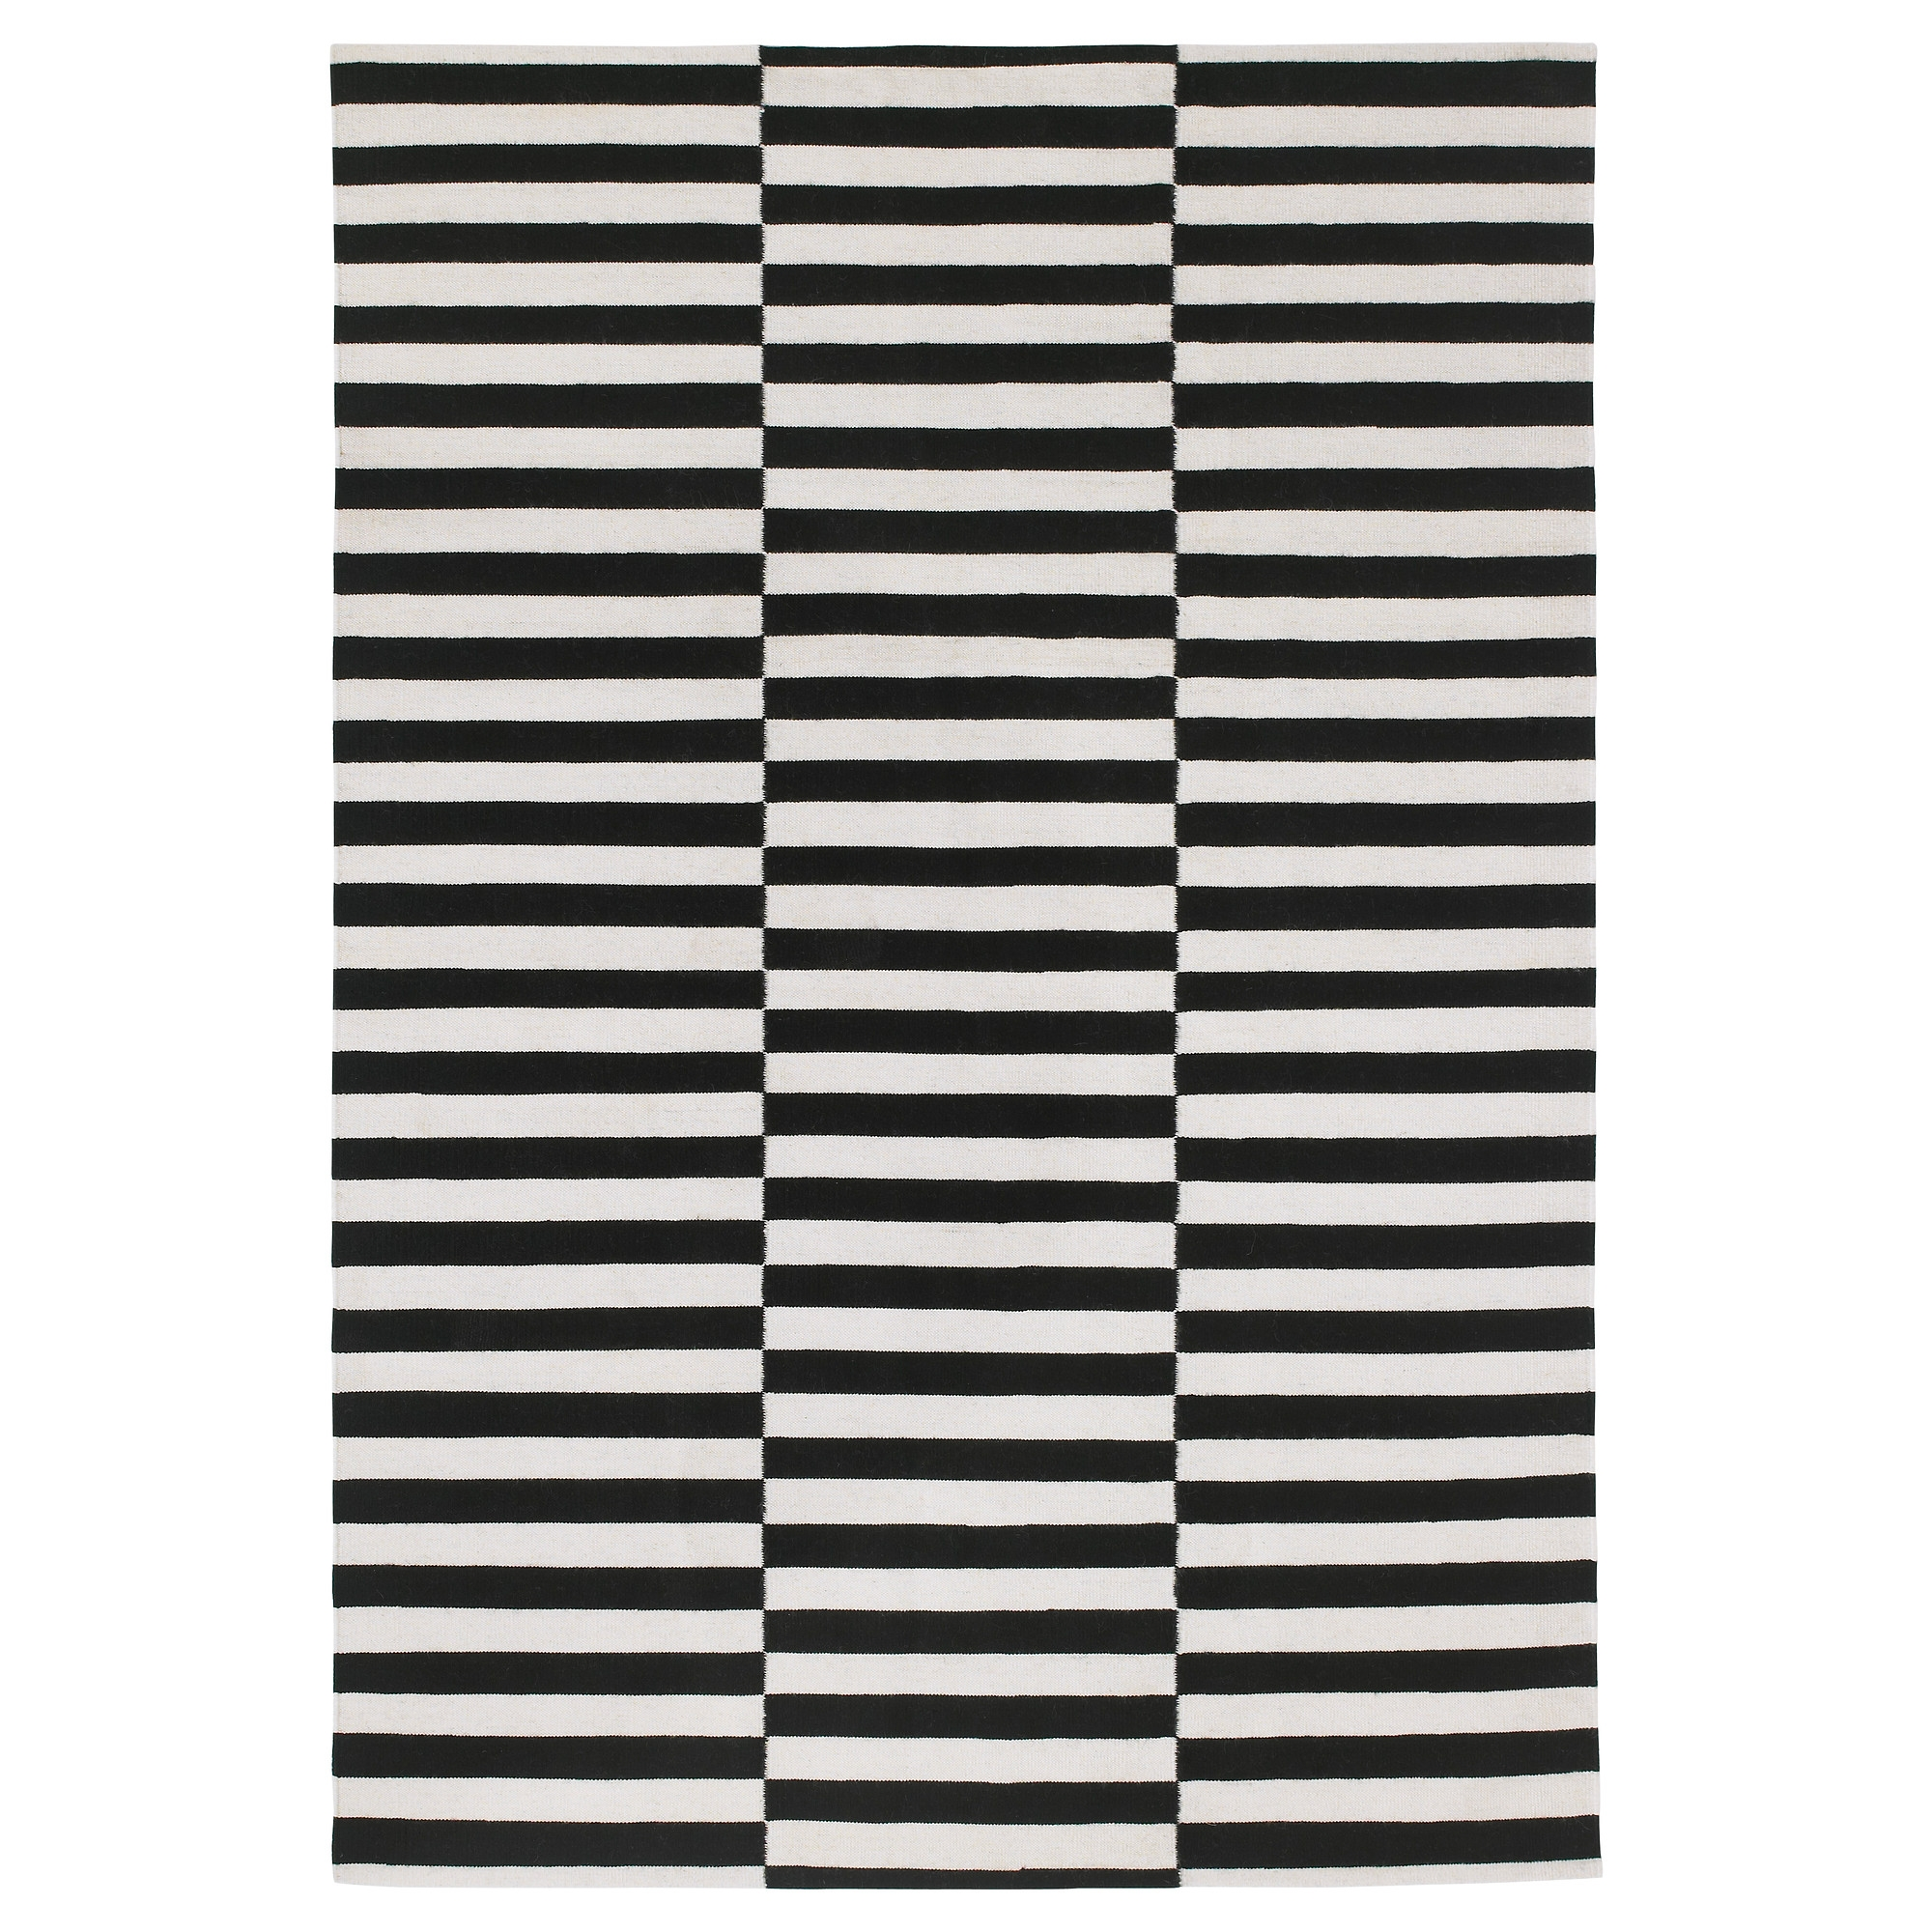 Stockholm Rug Flatwoven 5 7 X7 10 Ikea Regarding Striped Mats (Image 11 of 15)